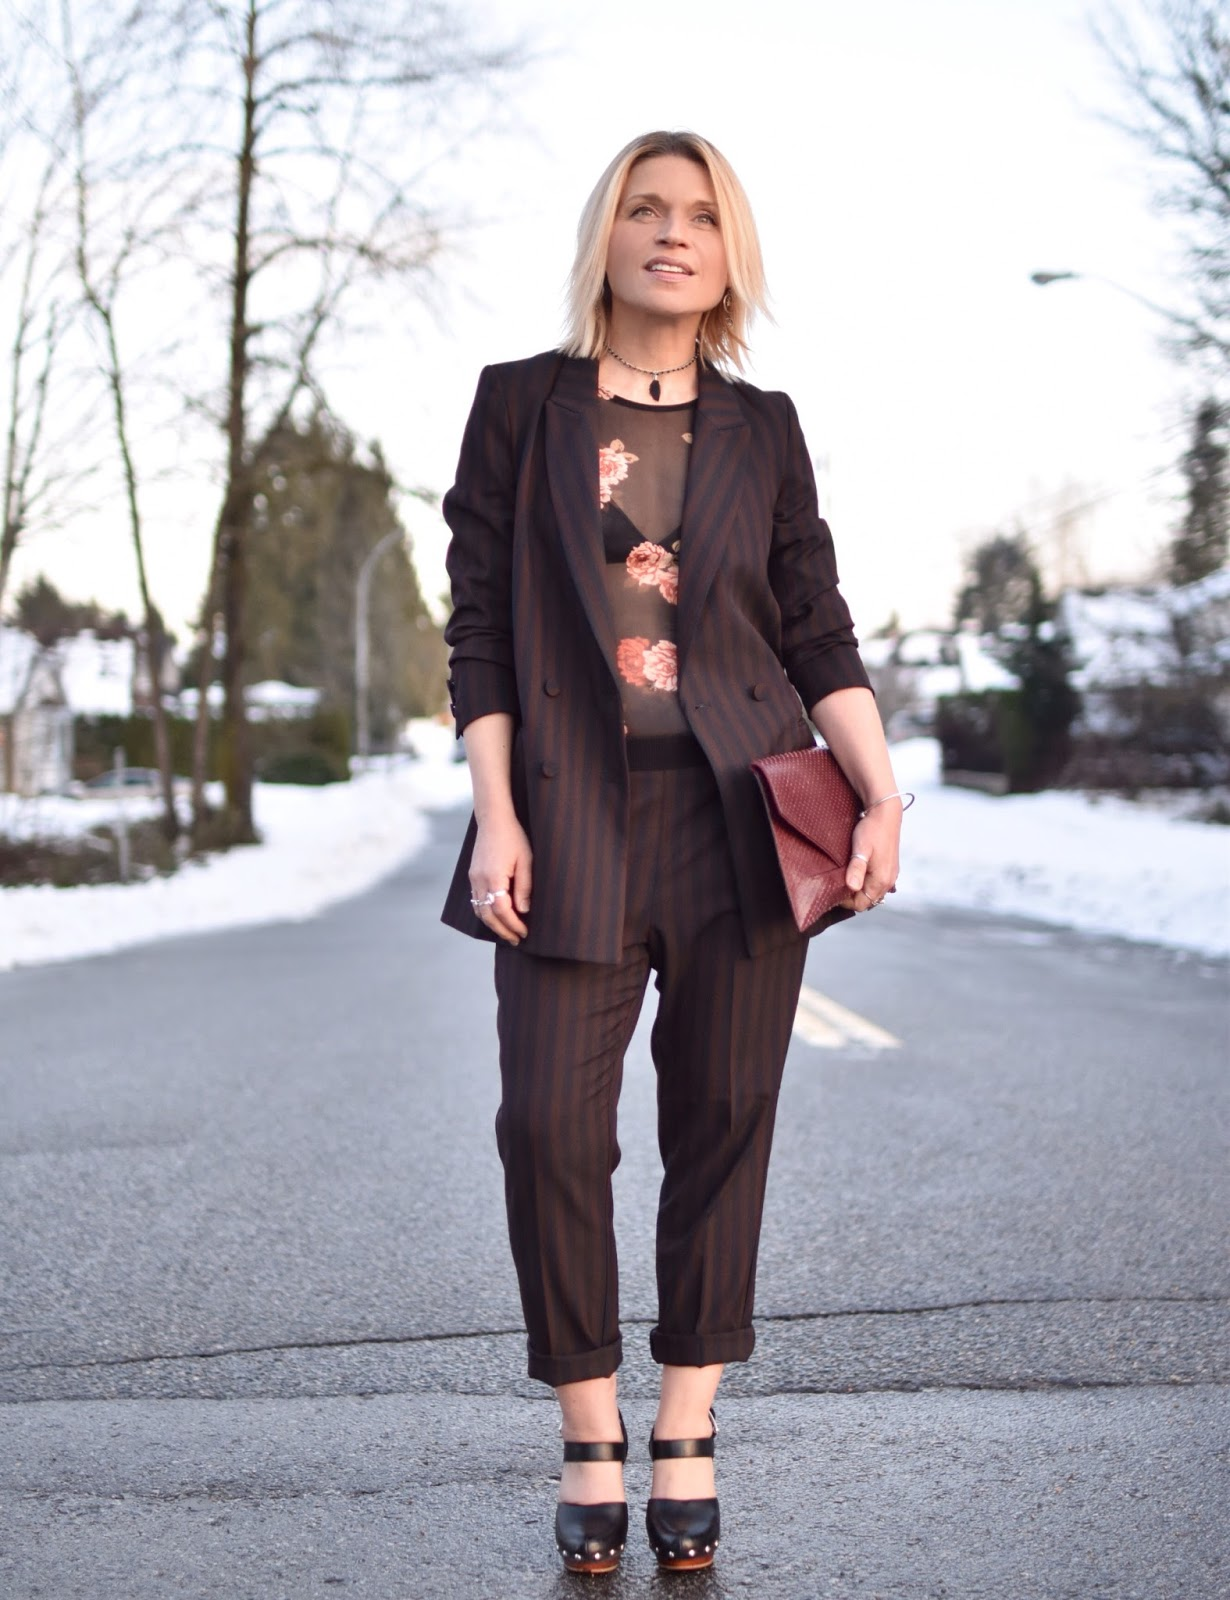 Monika Faulkner outfit inspiration - styling a slouchy striped suit with a sheer top and platform mary-jane shoes